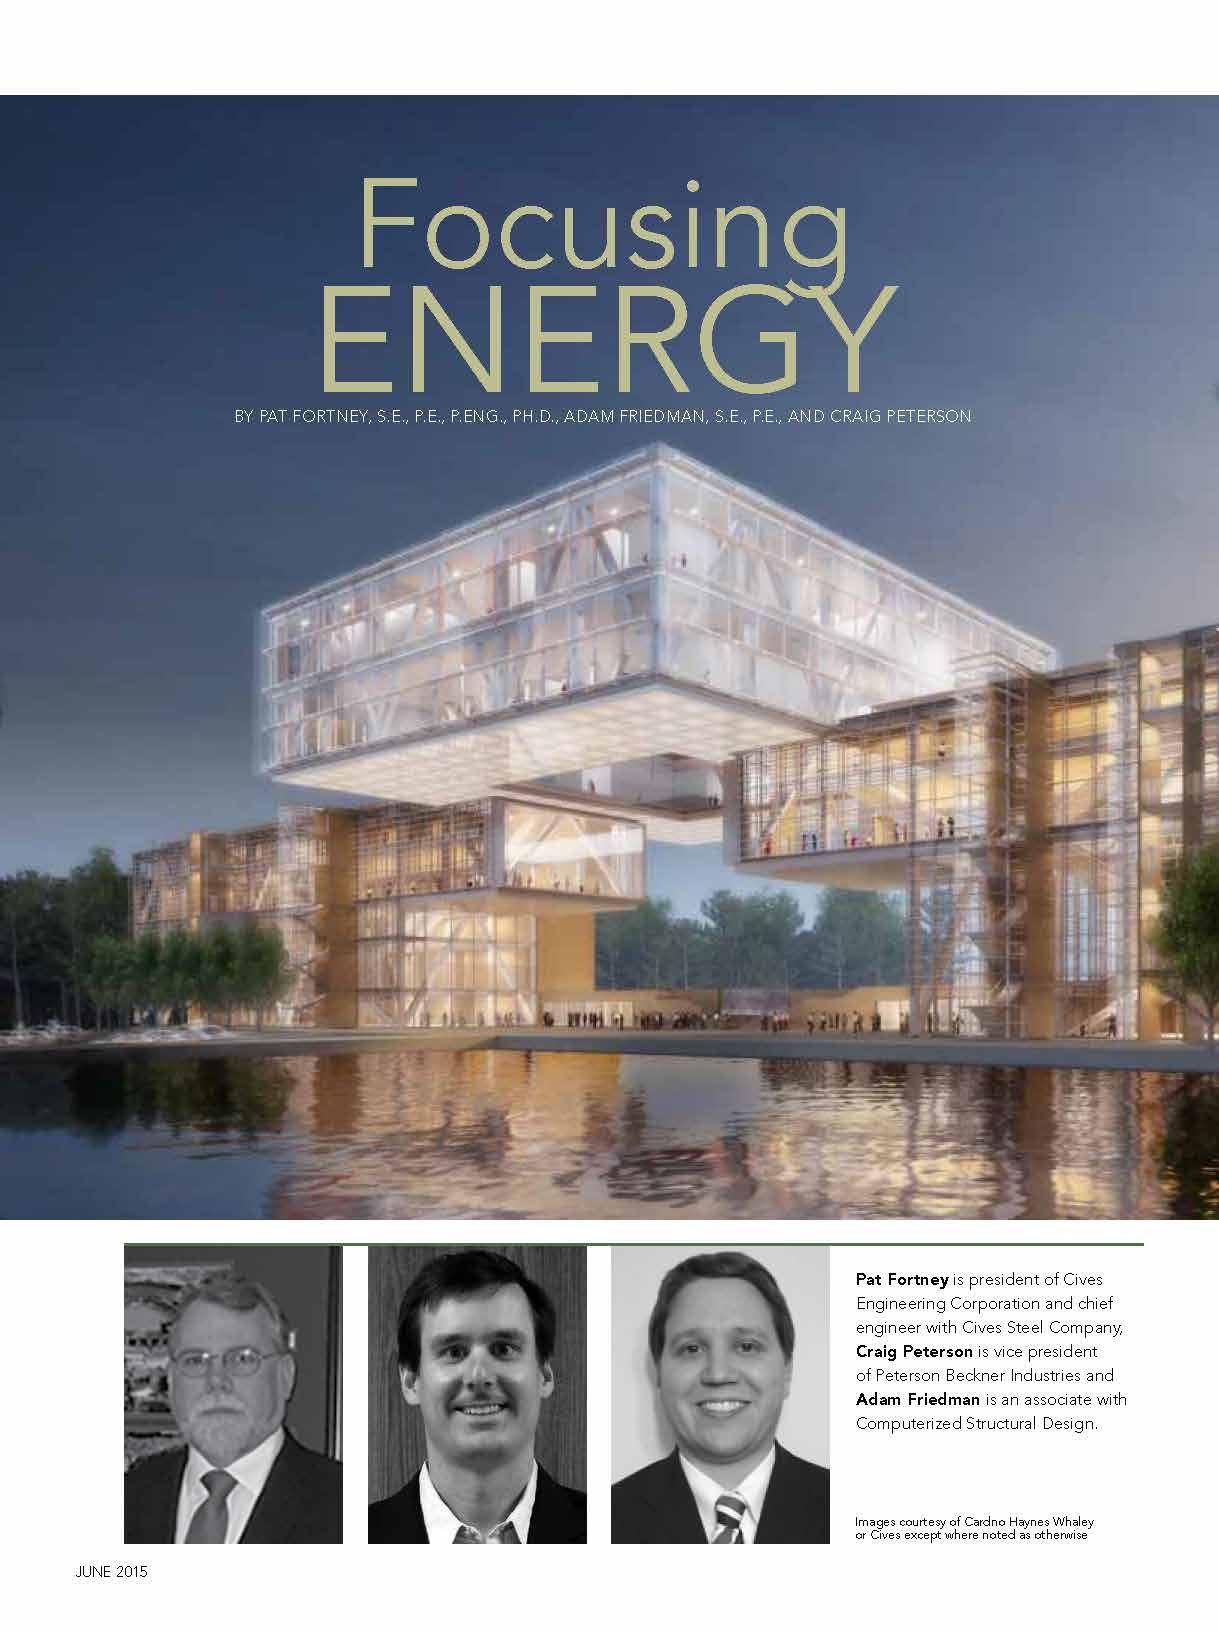 Modern Steel Construction - Focusing Energy | CSD Structural Engineers